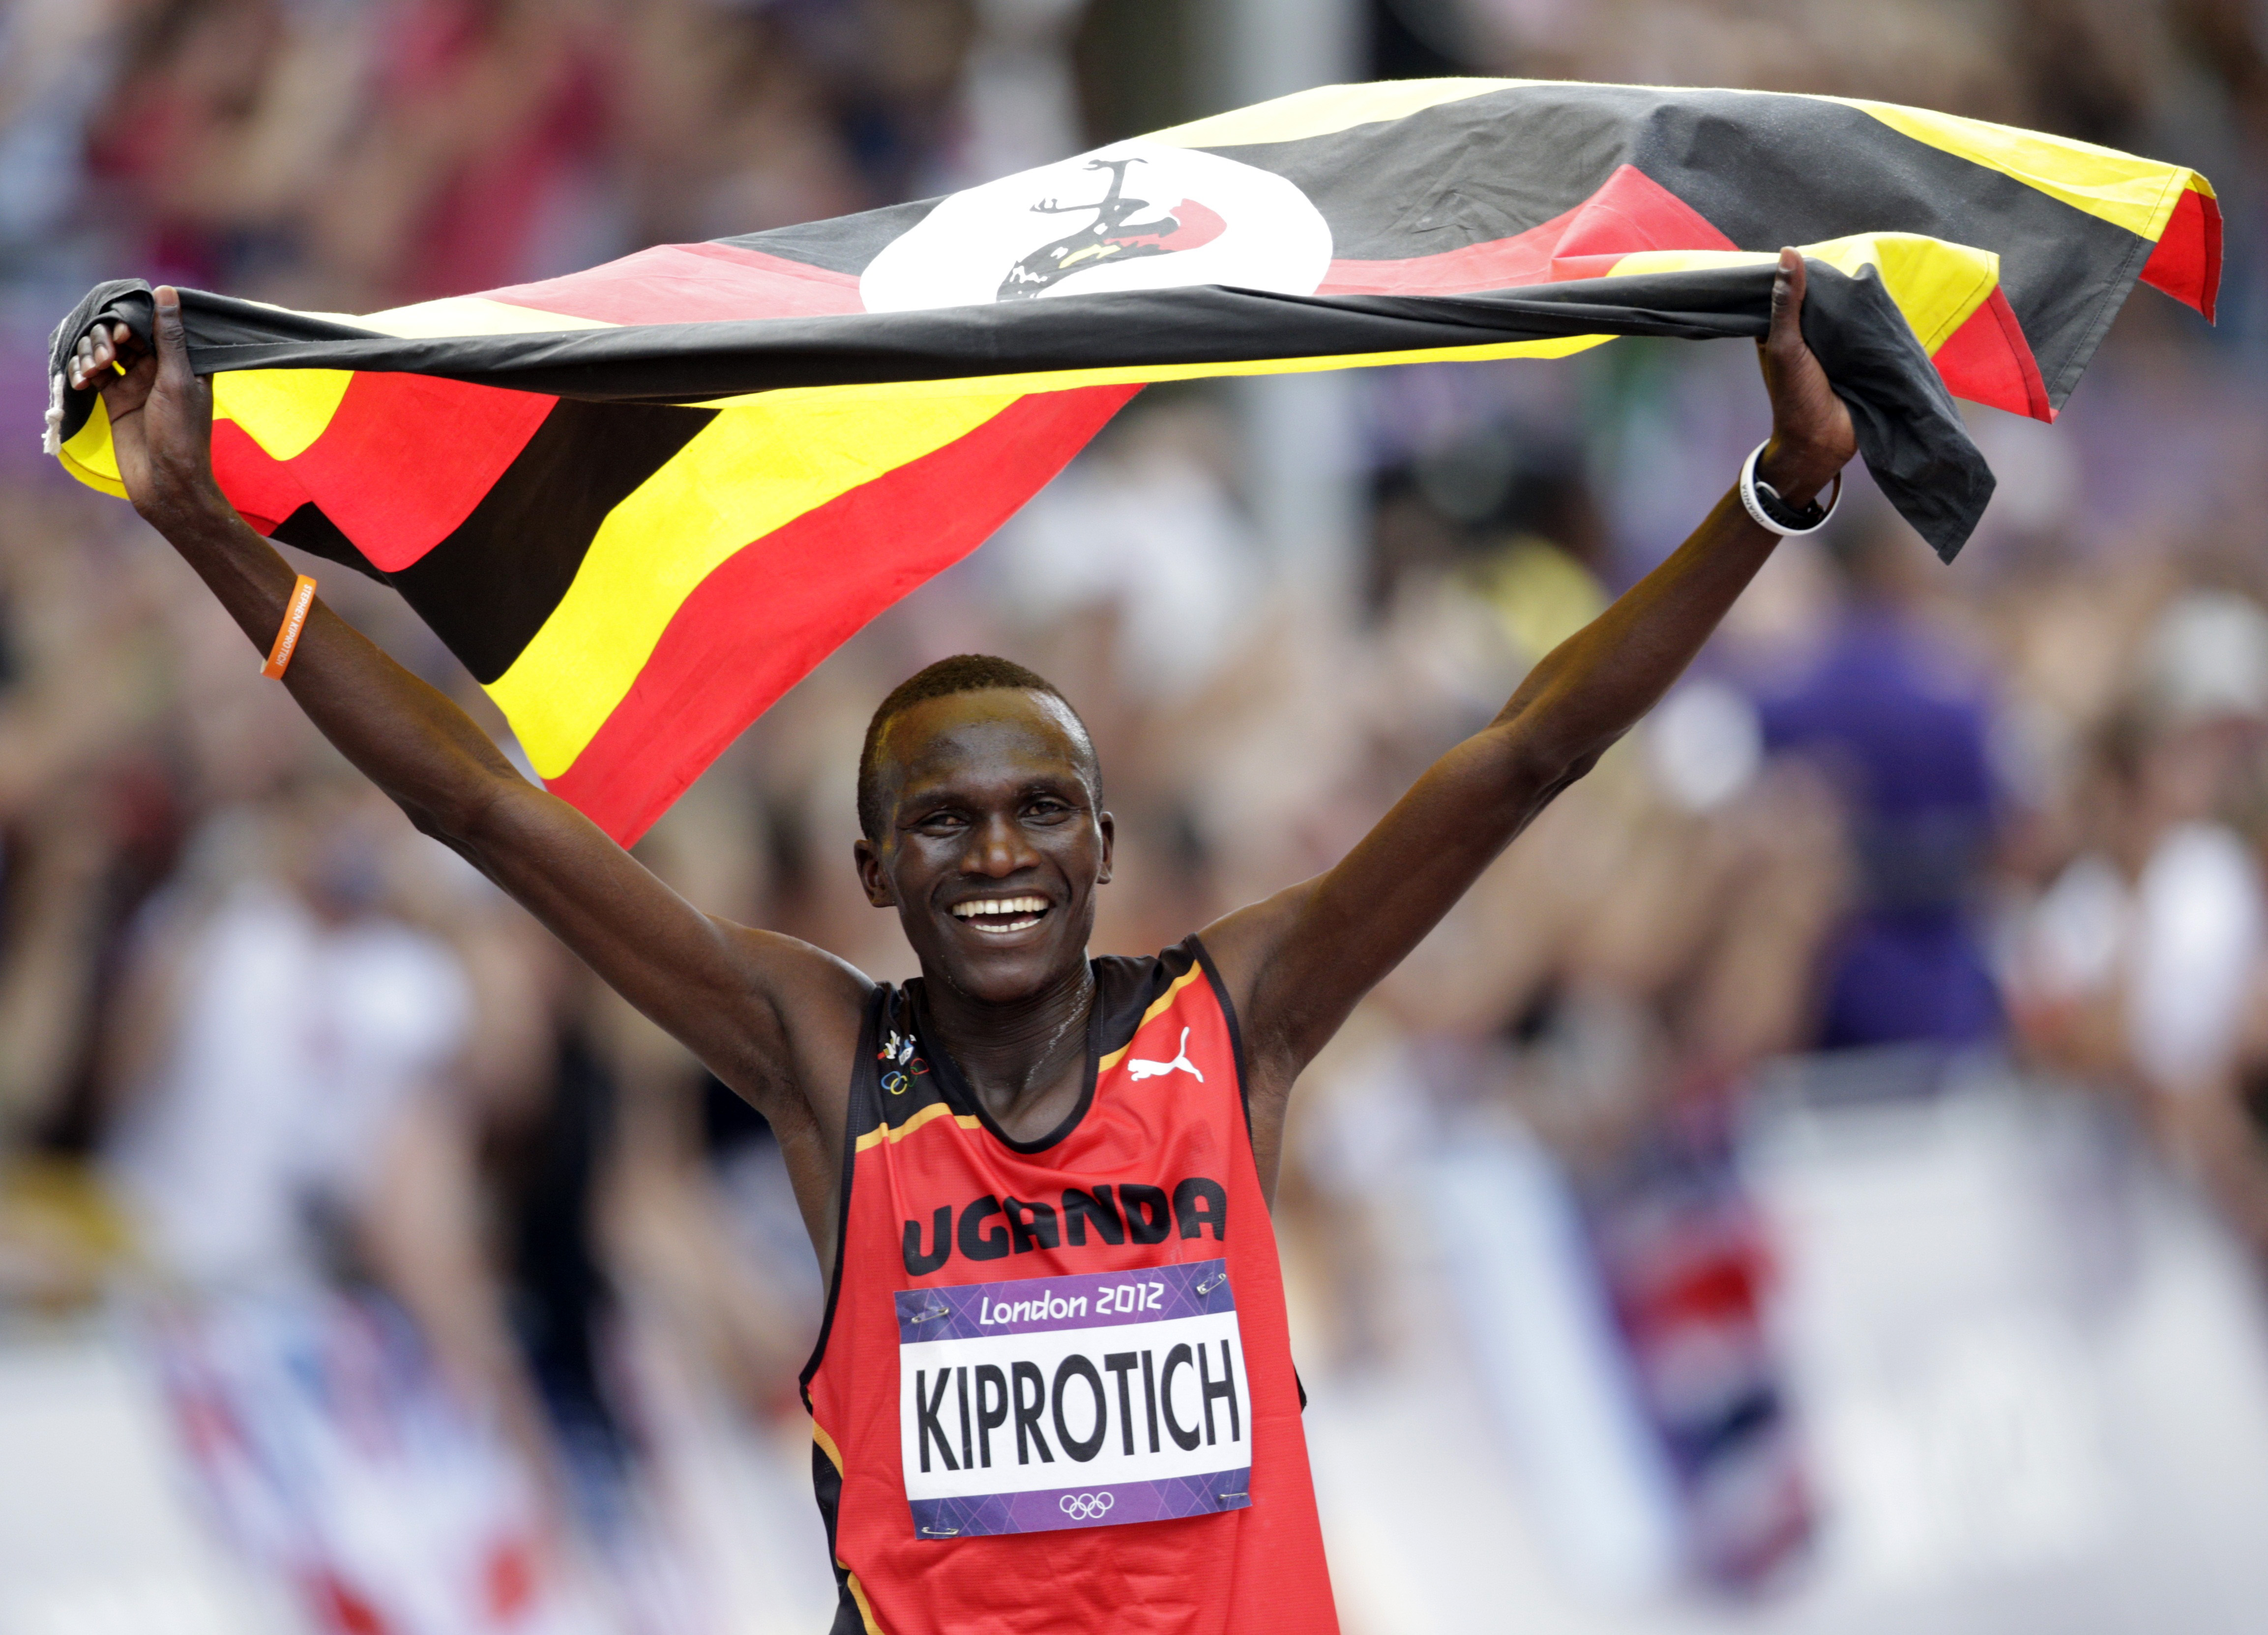 Uganda's Stephen Kiprotich celebrates with his national flag after winning the men's marathon in the London 2012 Olympic Games at The Mall August 12, 2012. REUTERS/Max Rossi (BRITAIN - Tags: SPORT ATHLETICS OLYMPICS)